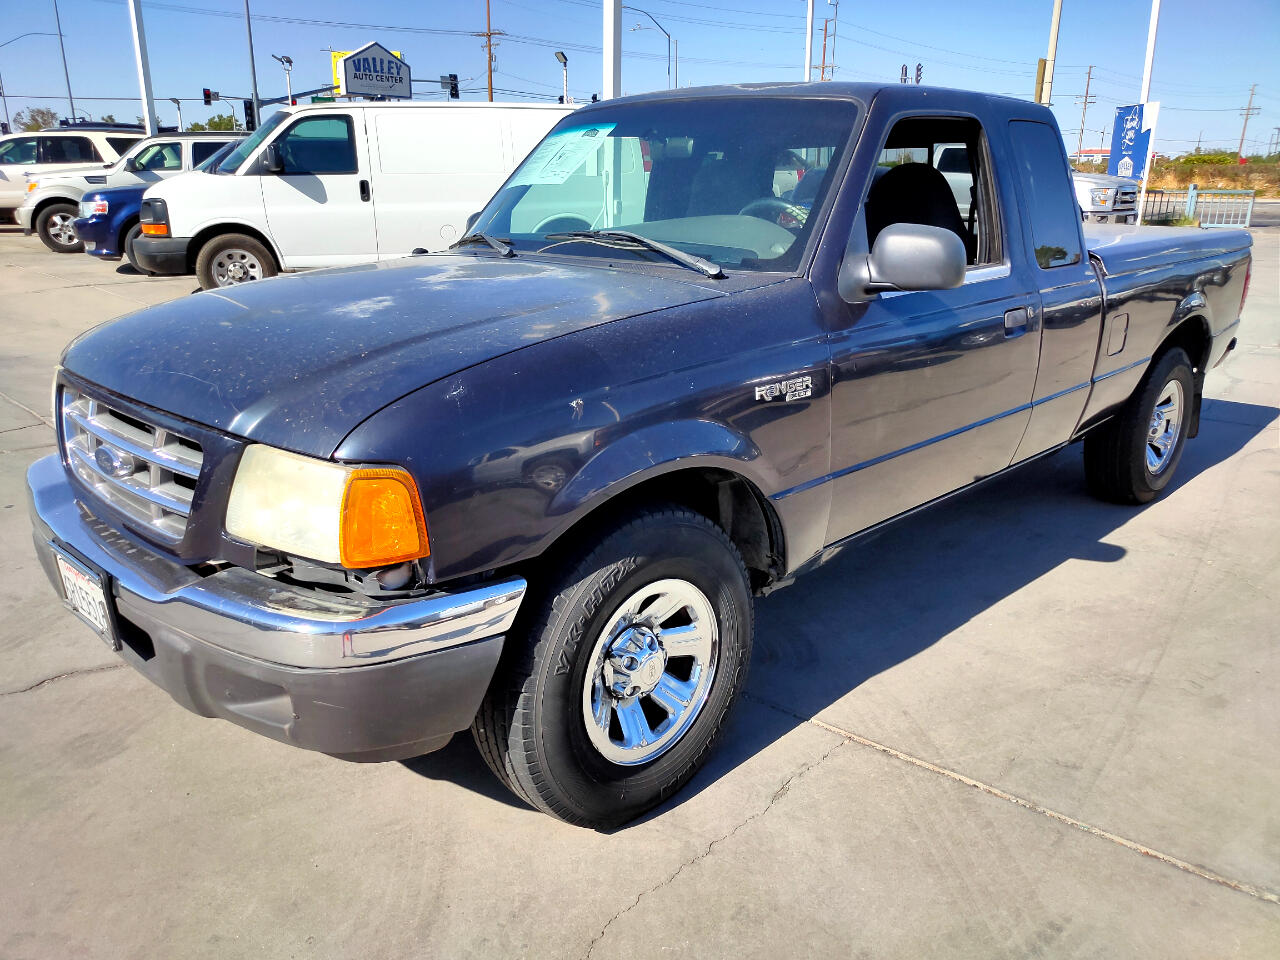 Ford Ranger XLT SuperCab 4.0 w/Appearance 2WD 2001